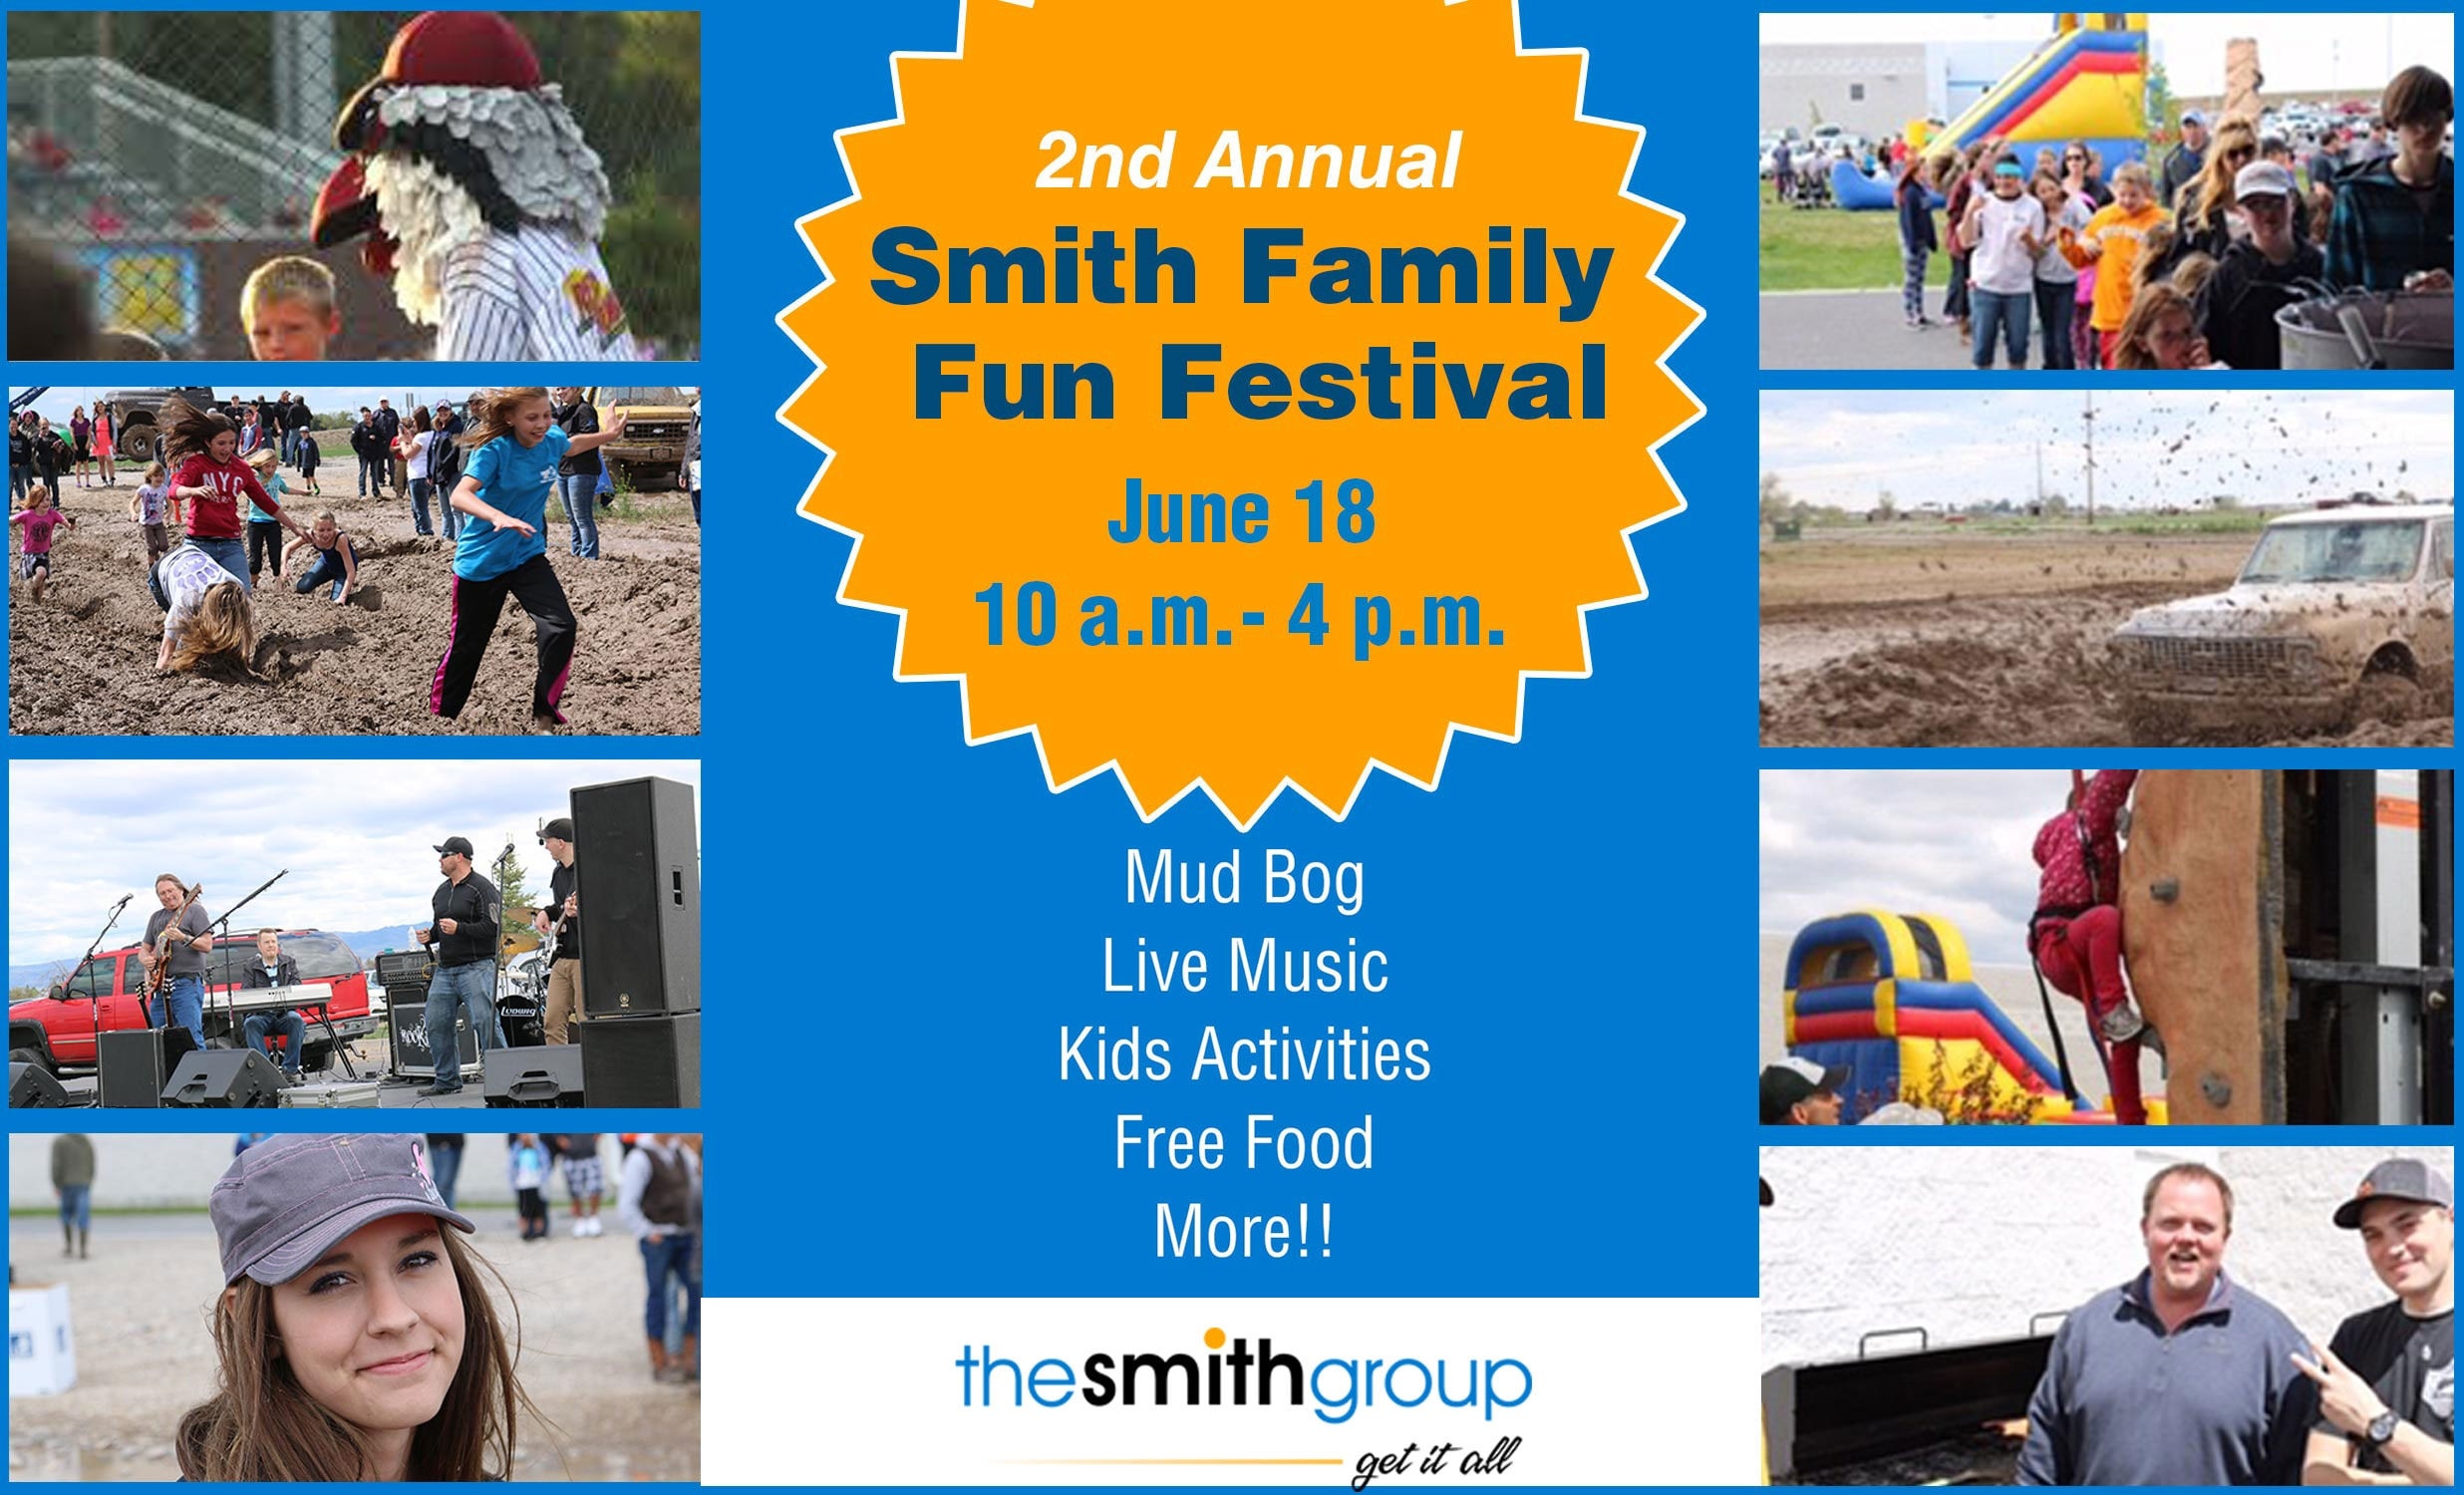 Smith Family Fun Festival